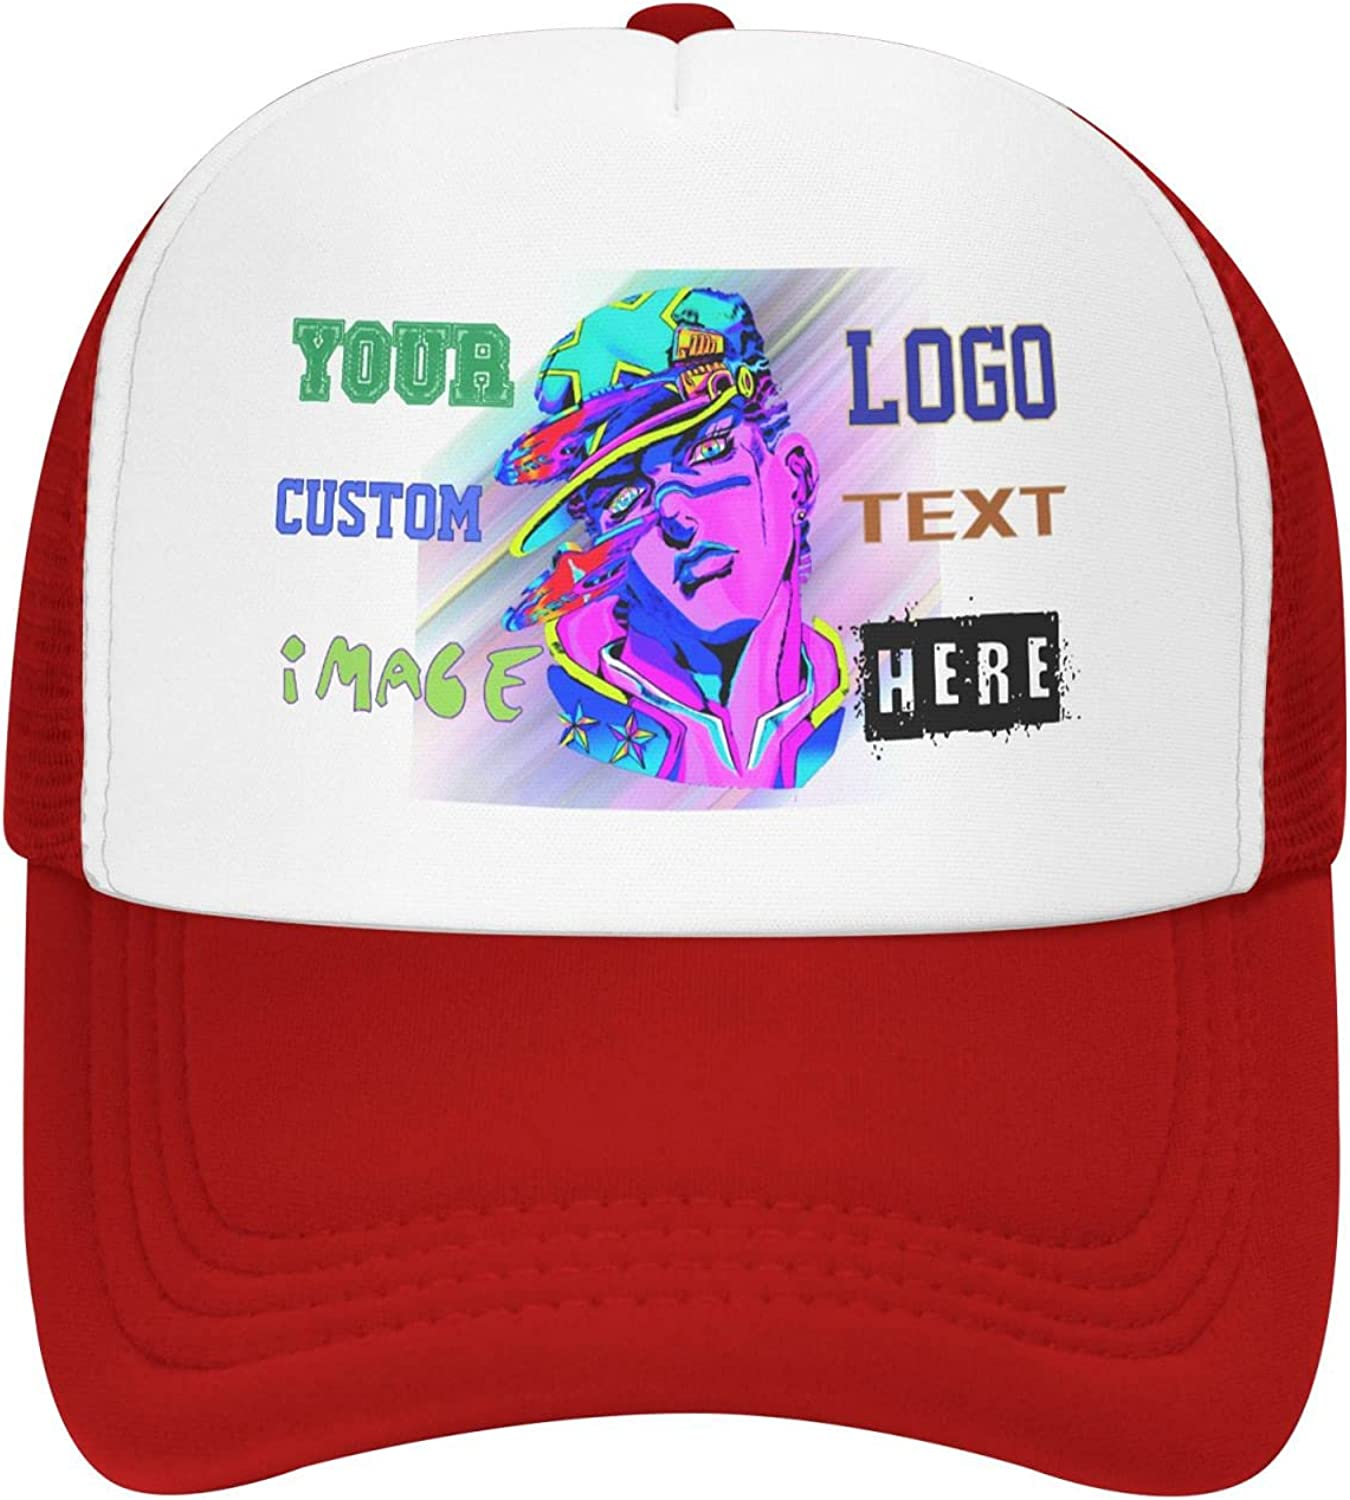 Custom Caps Baseball Hats Hat Cus Outstanding Excellence Trucker Personalized